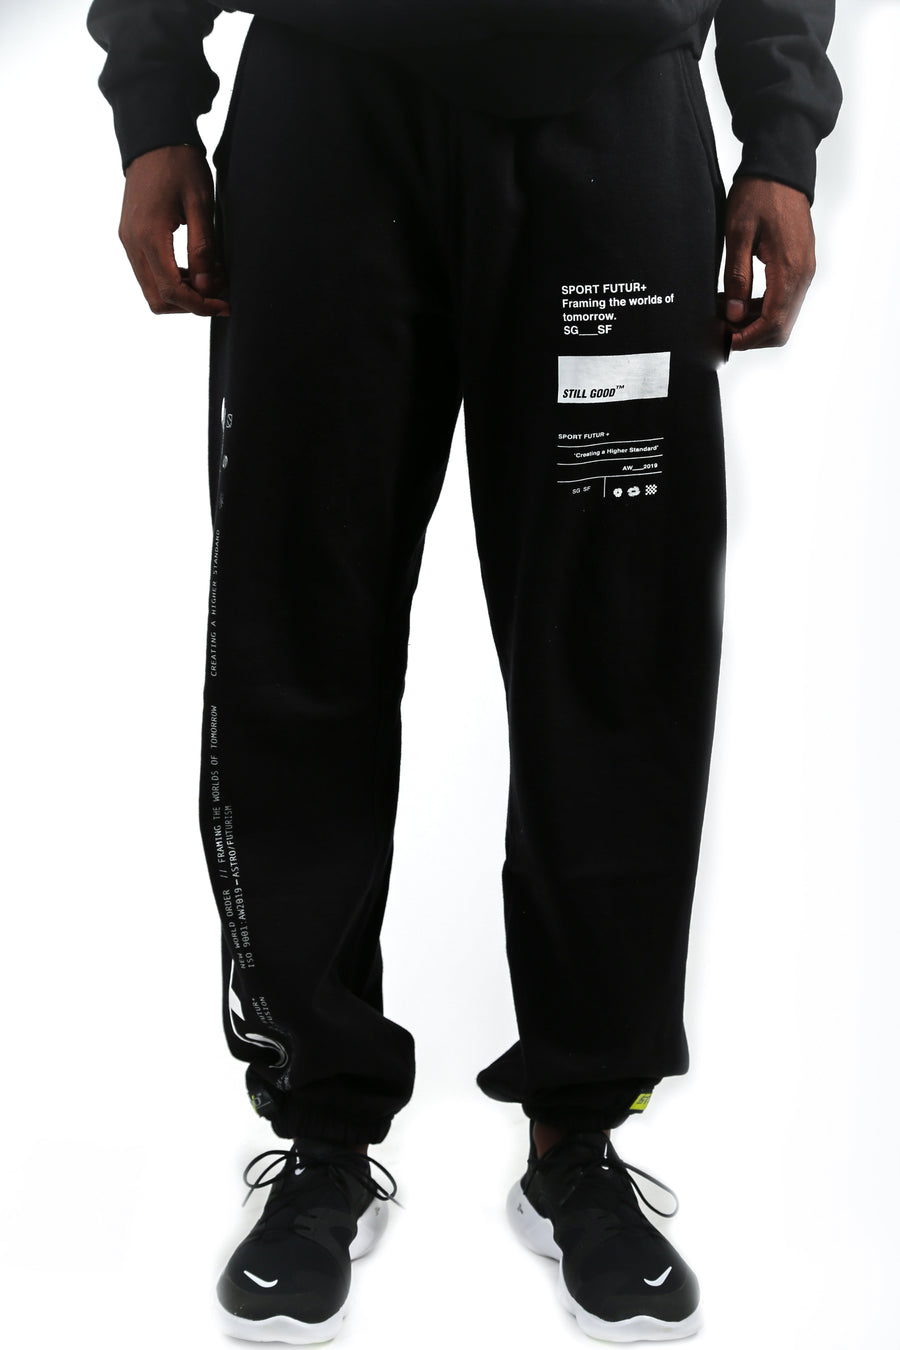 still good reflect sweatpants